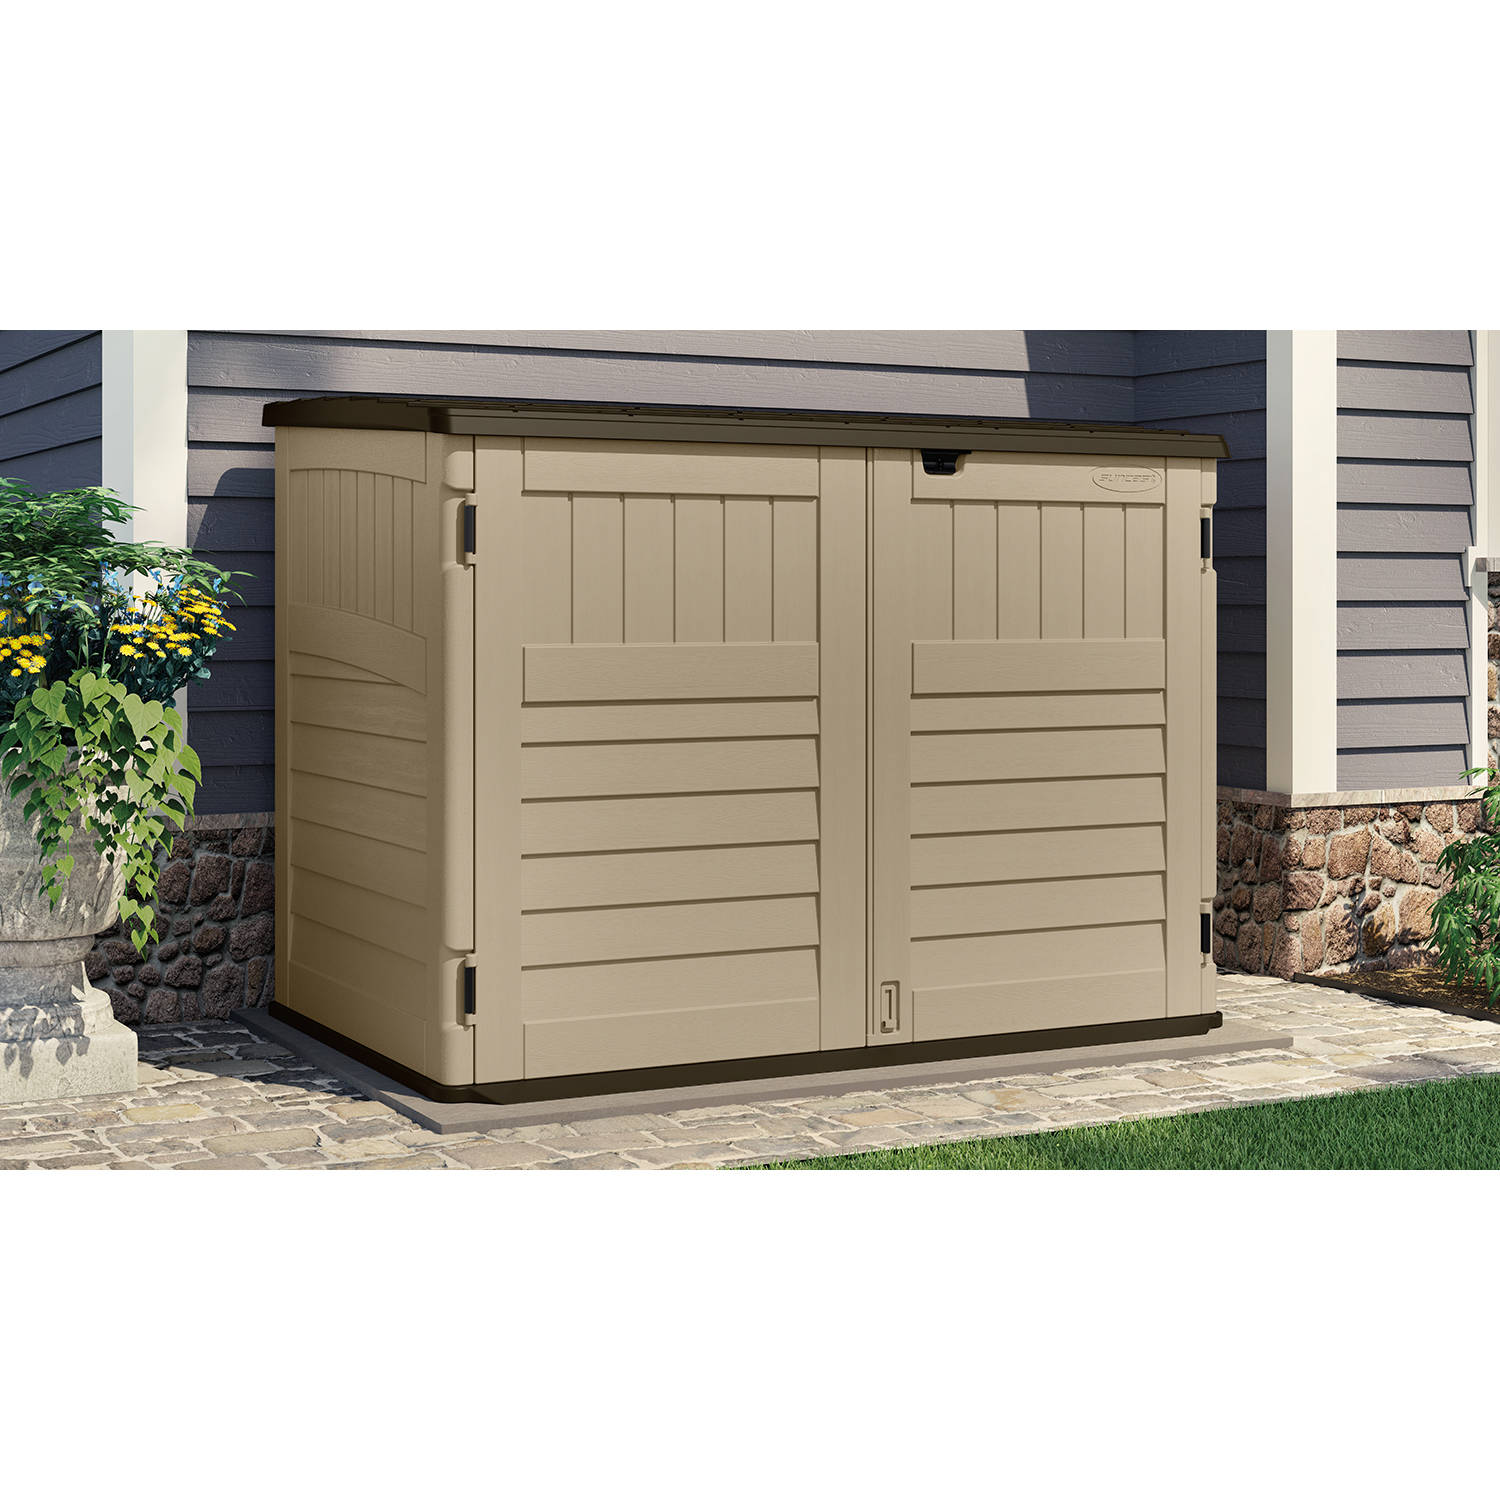 Suncast Toter Trash Can Shed Sand – Walmart Inventory